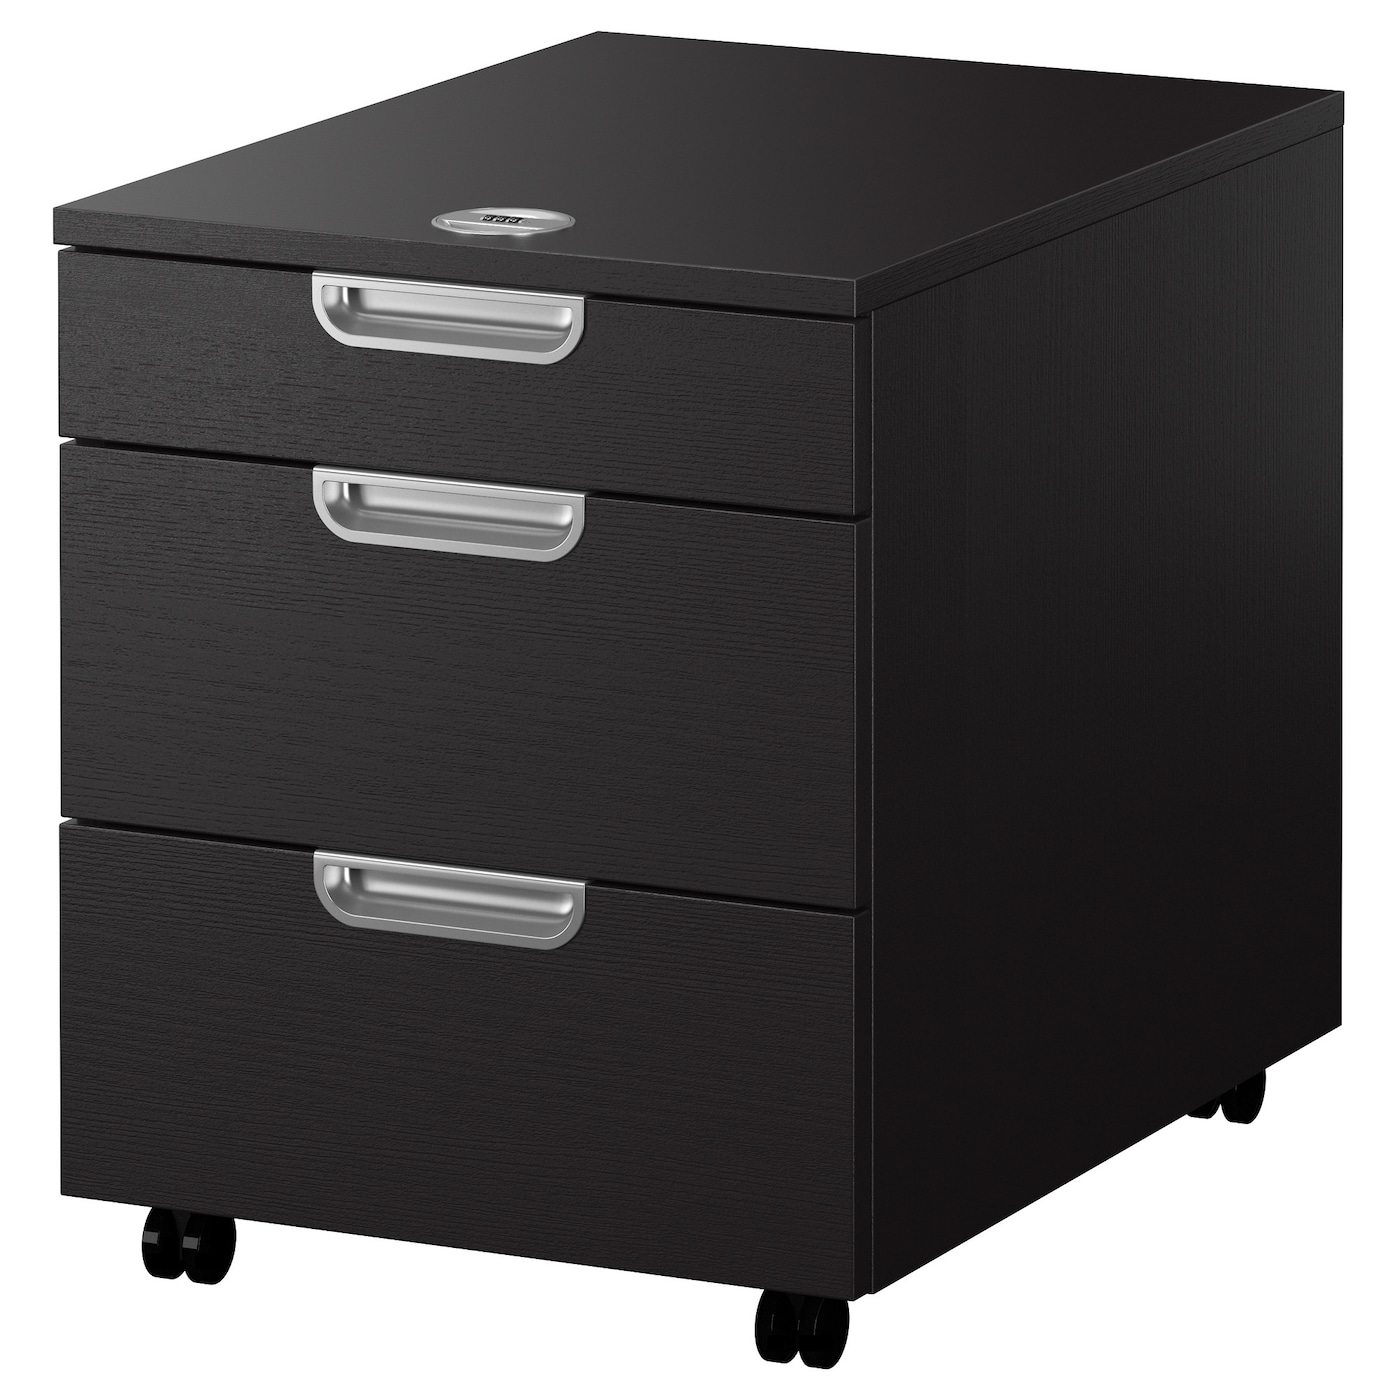 ikea storage cabinets galant drawer unit on castors black brown 45x55 cm ikea 29806